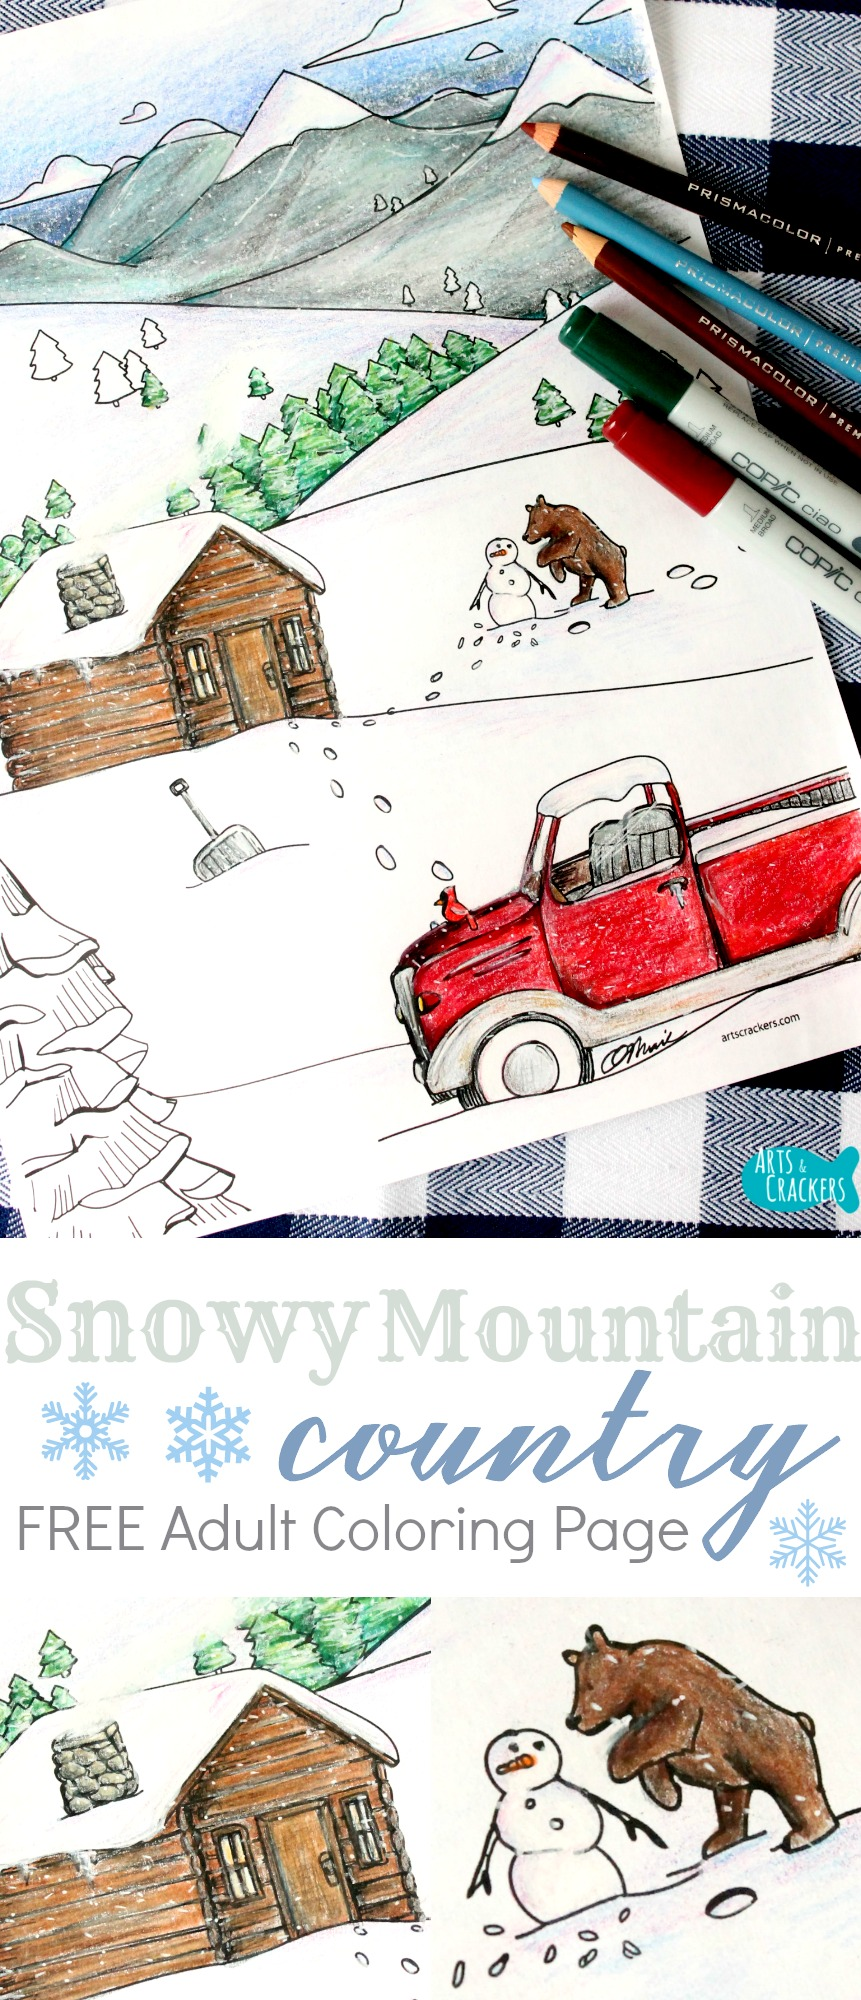 Free winter coloring pages for adults - This Free Adult Coloring Page Captures The Snowy Mountain Country Landscape Winter Coloring Page